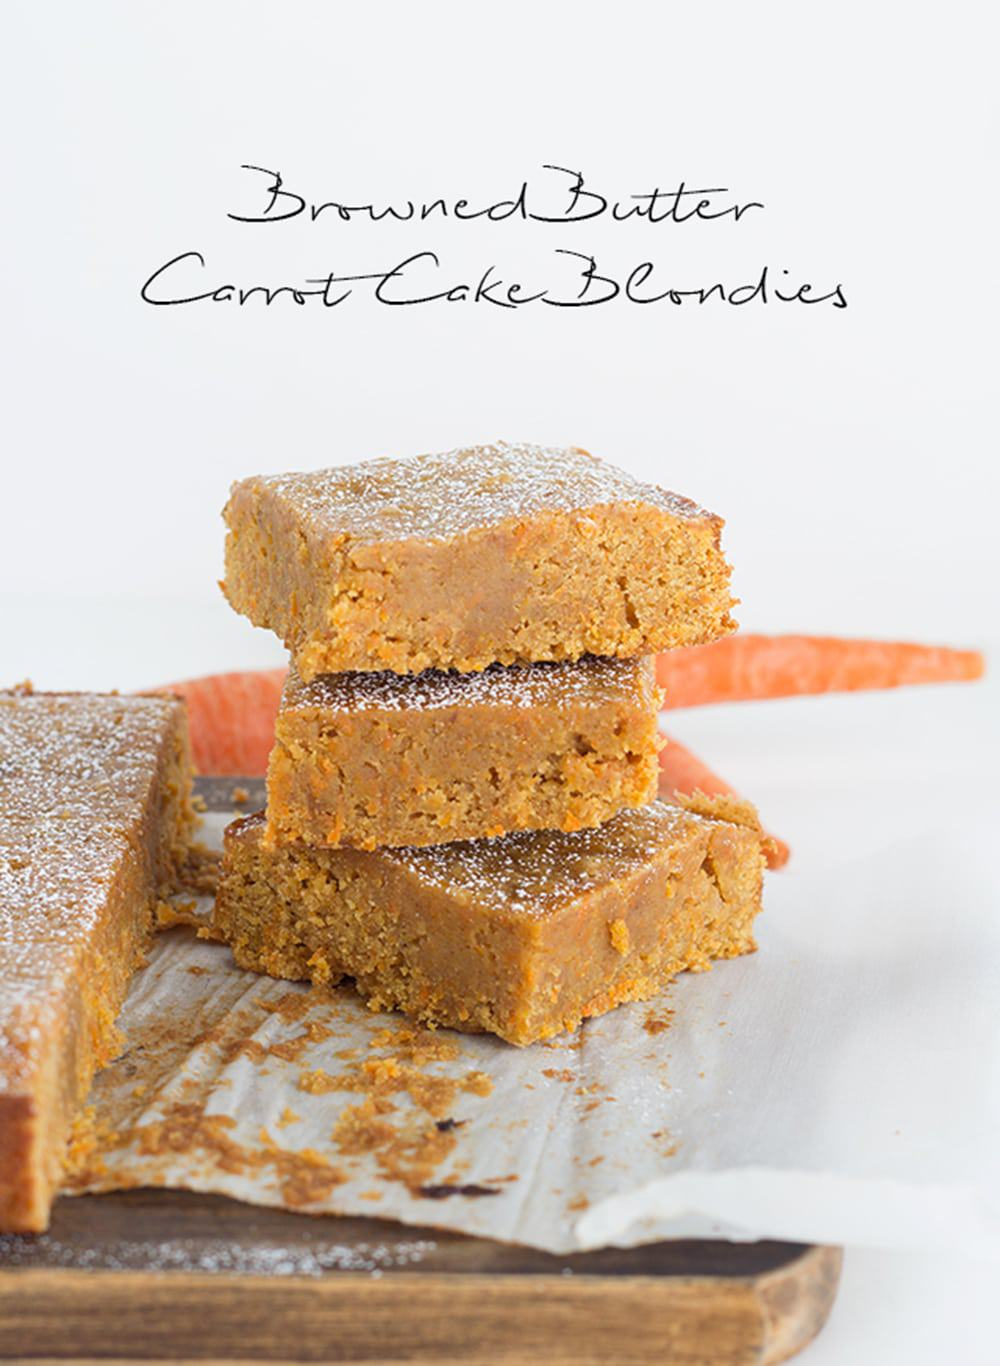 Browned Butter Carrot Cake Blondies